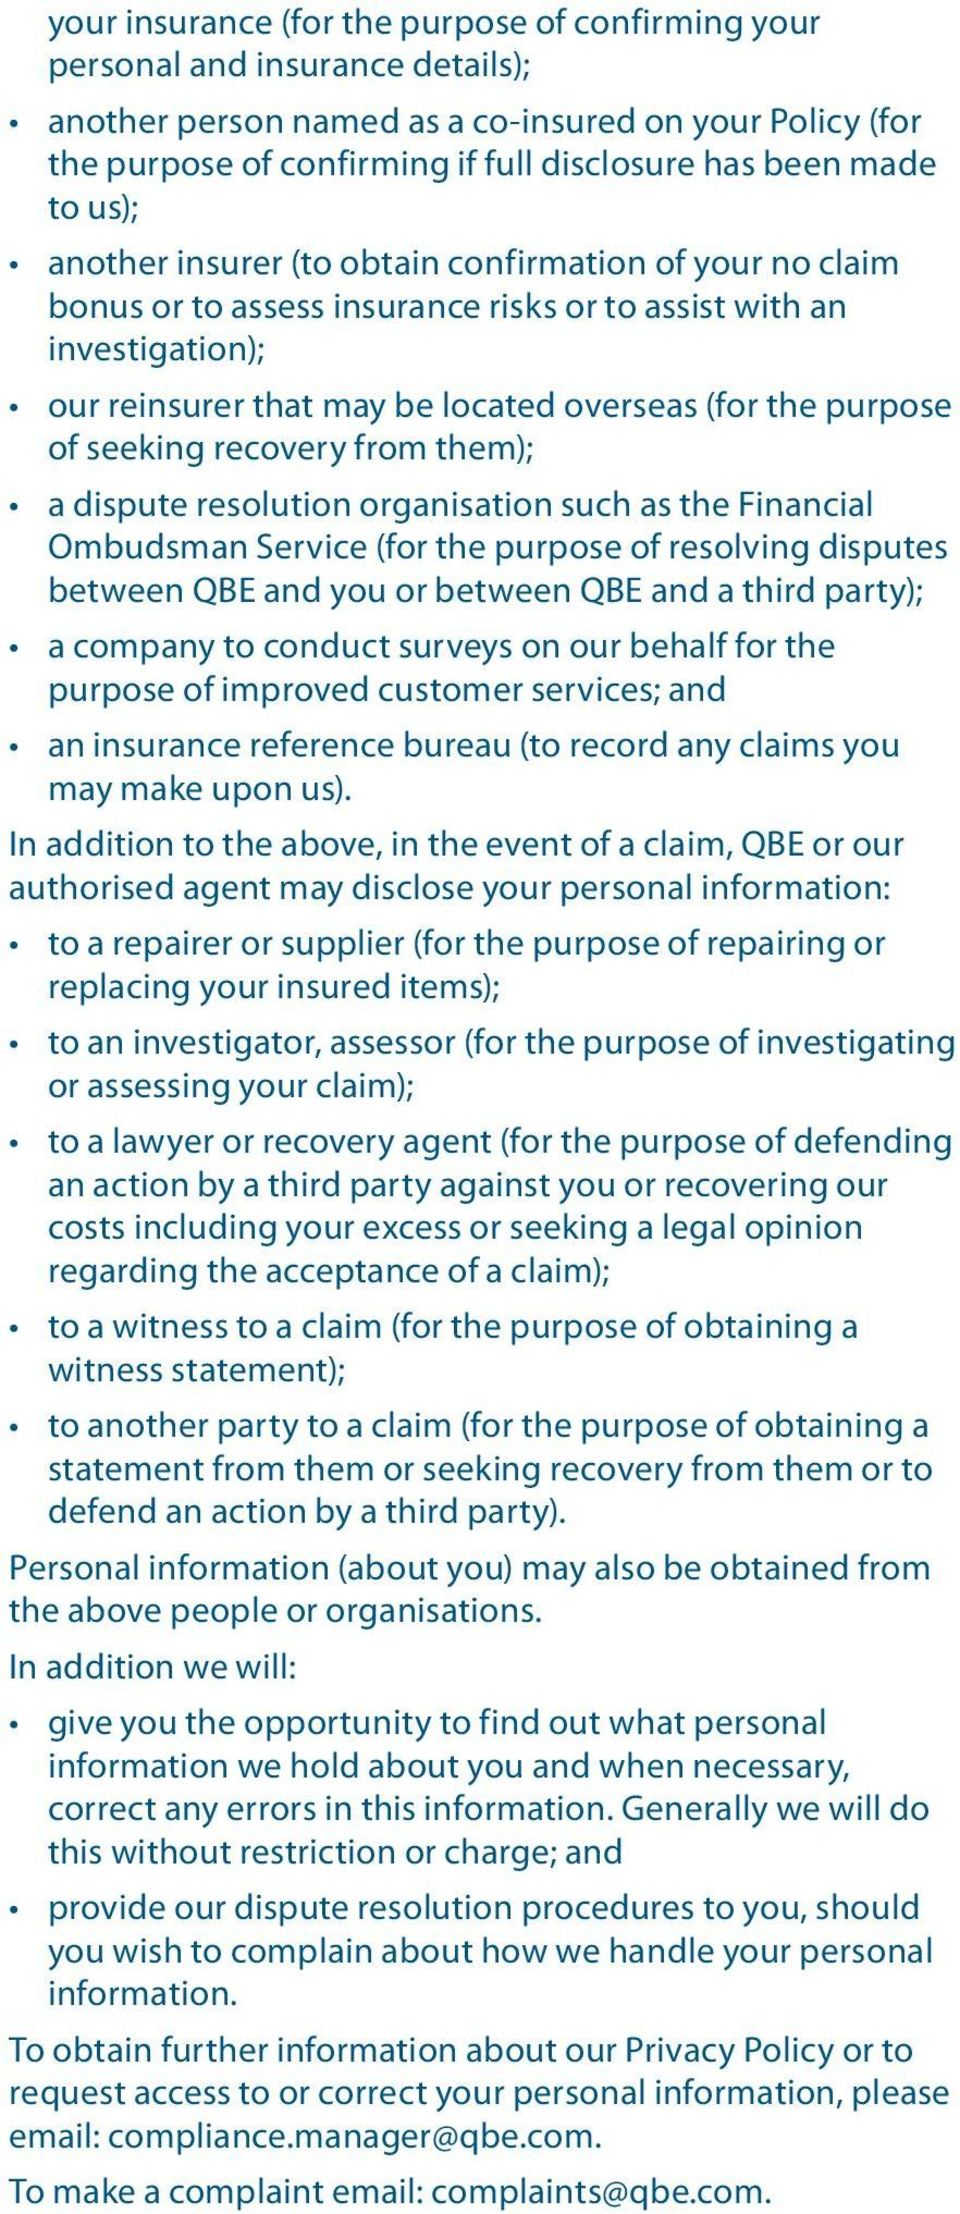 seeking recovery from them); a dispute resolution organisation such as the Financial Ombudsman Service (for the purpose of resolving disputes between QBE and you or between QBE and a third party); a